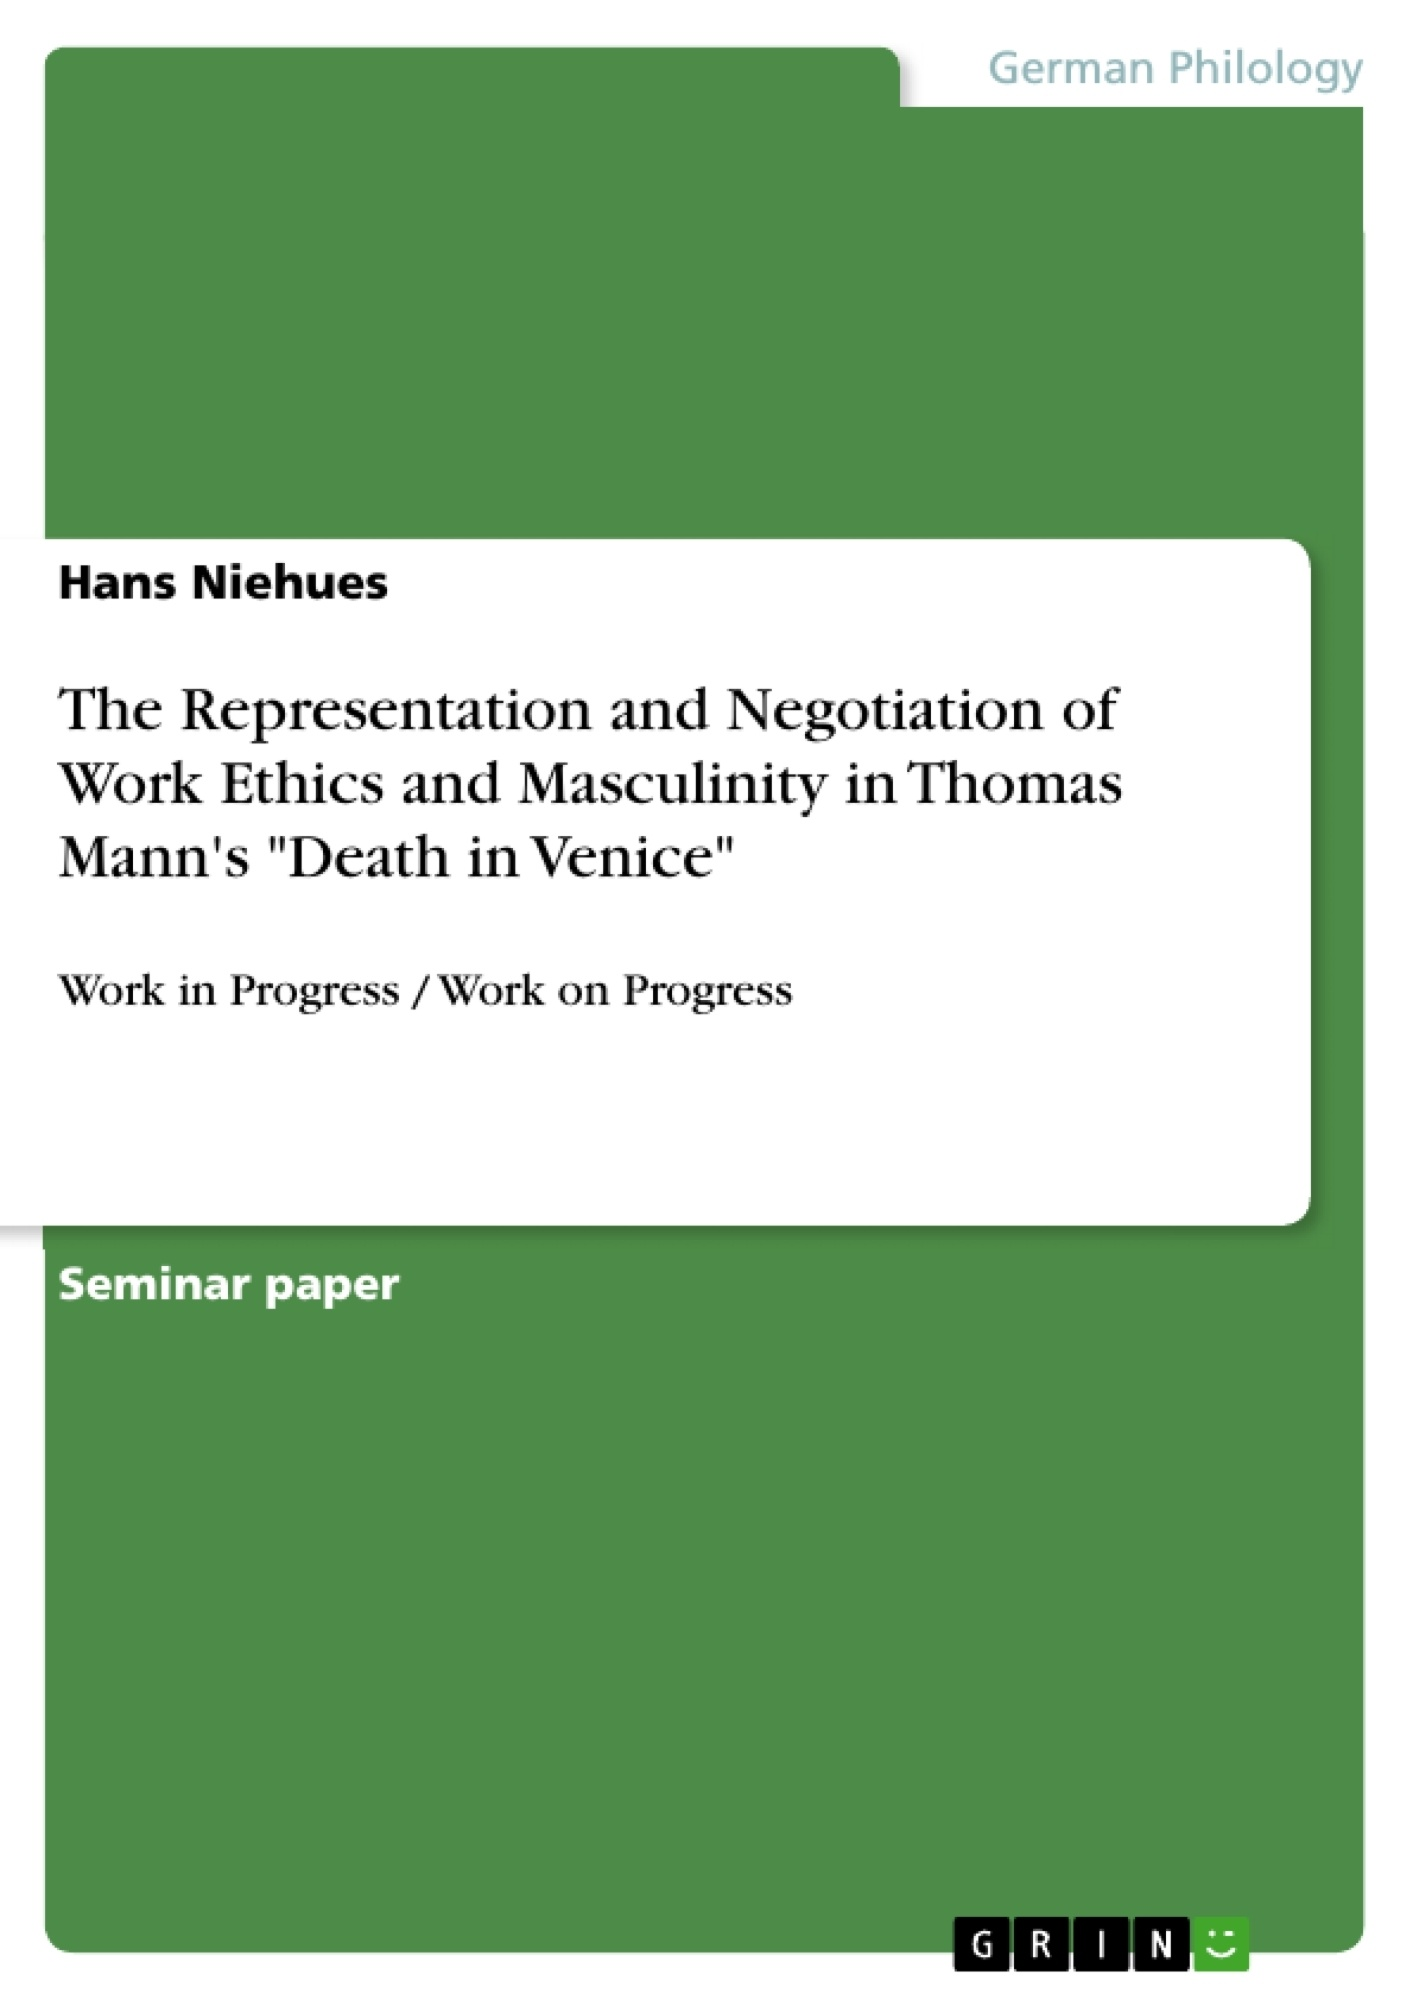 term paper on negotiation The negotiation process essays negotiation is one of the most important elements of the economic activity and the management's ability of being good negotiators is a.